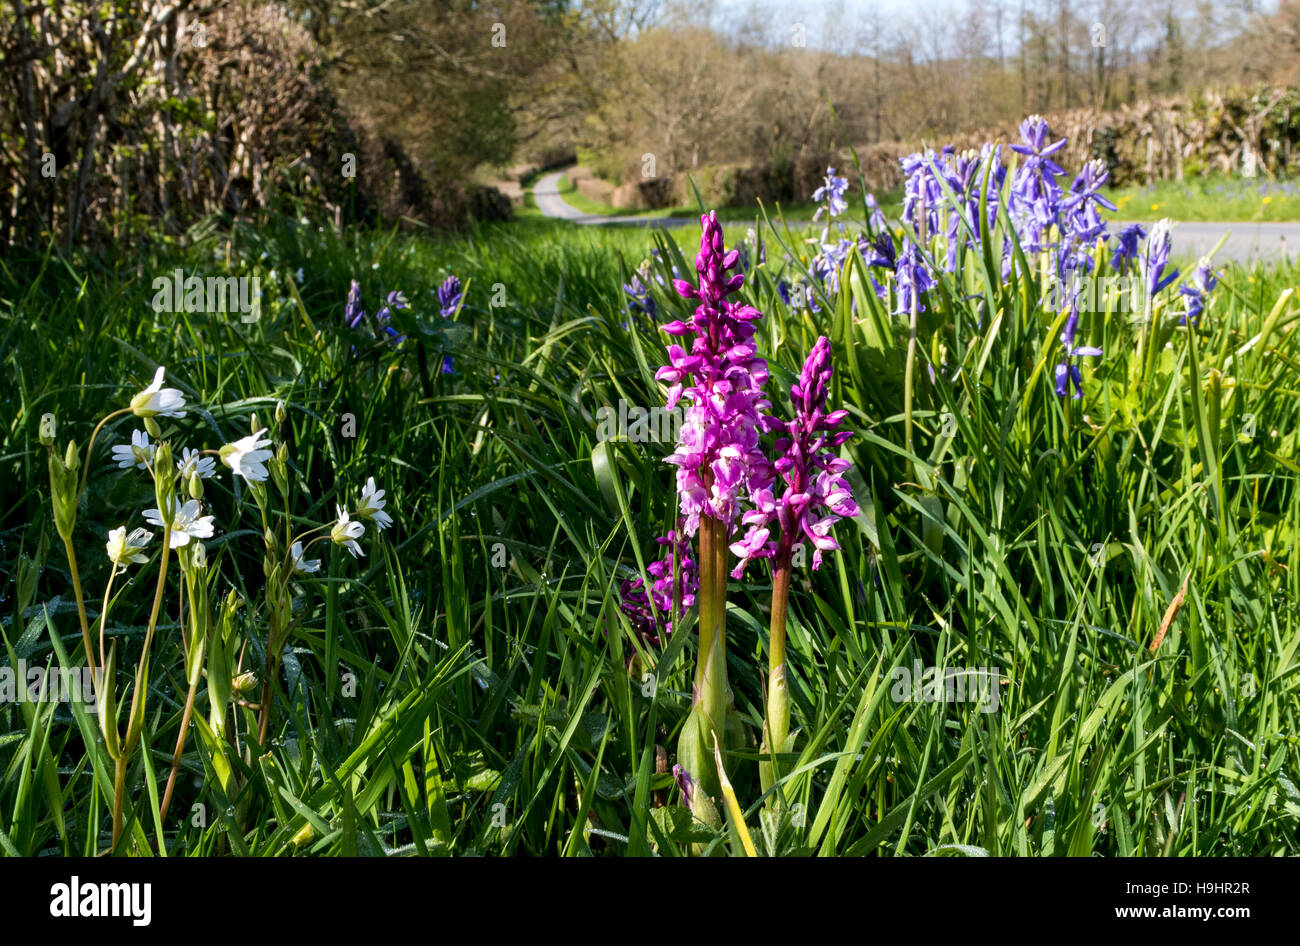 Colourful, Wild Spring Flowers Growing on the Grassy Verge of a North Devon Lane, Orchids, Bluebells, and Stitchwort. - Stock Image